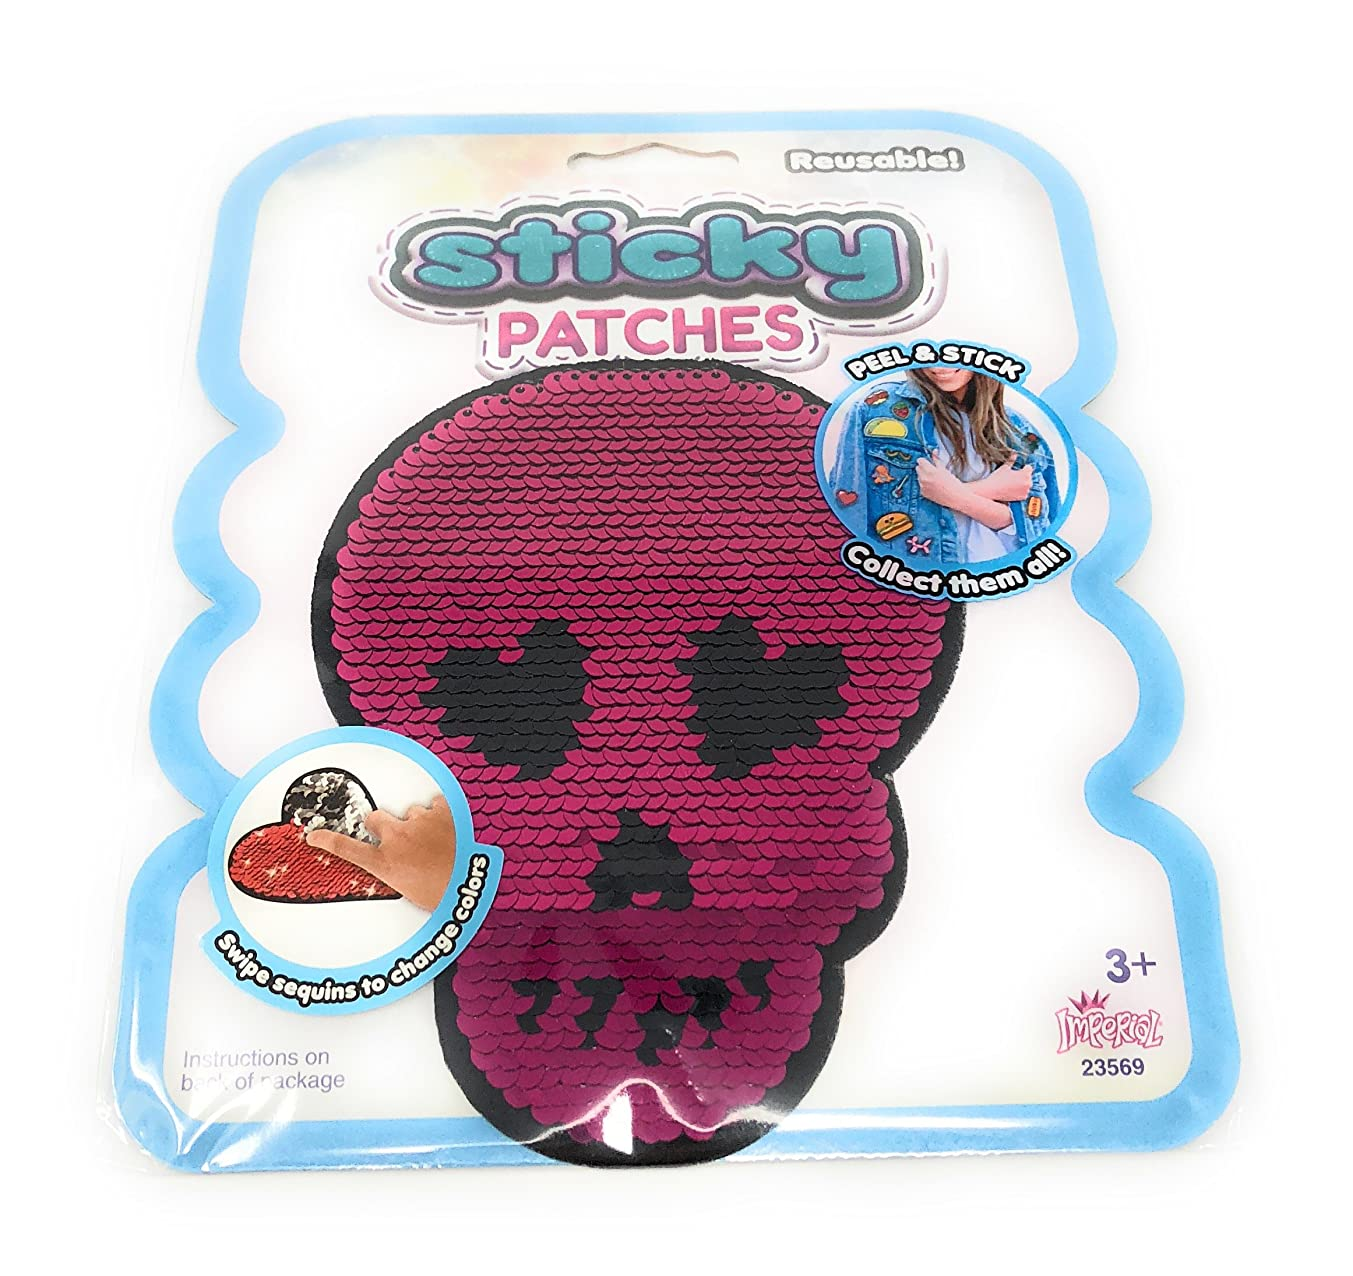 Imperial Reusable Decorative Sticky Patches ~ 1 count (Sequin Skull)